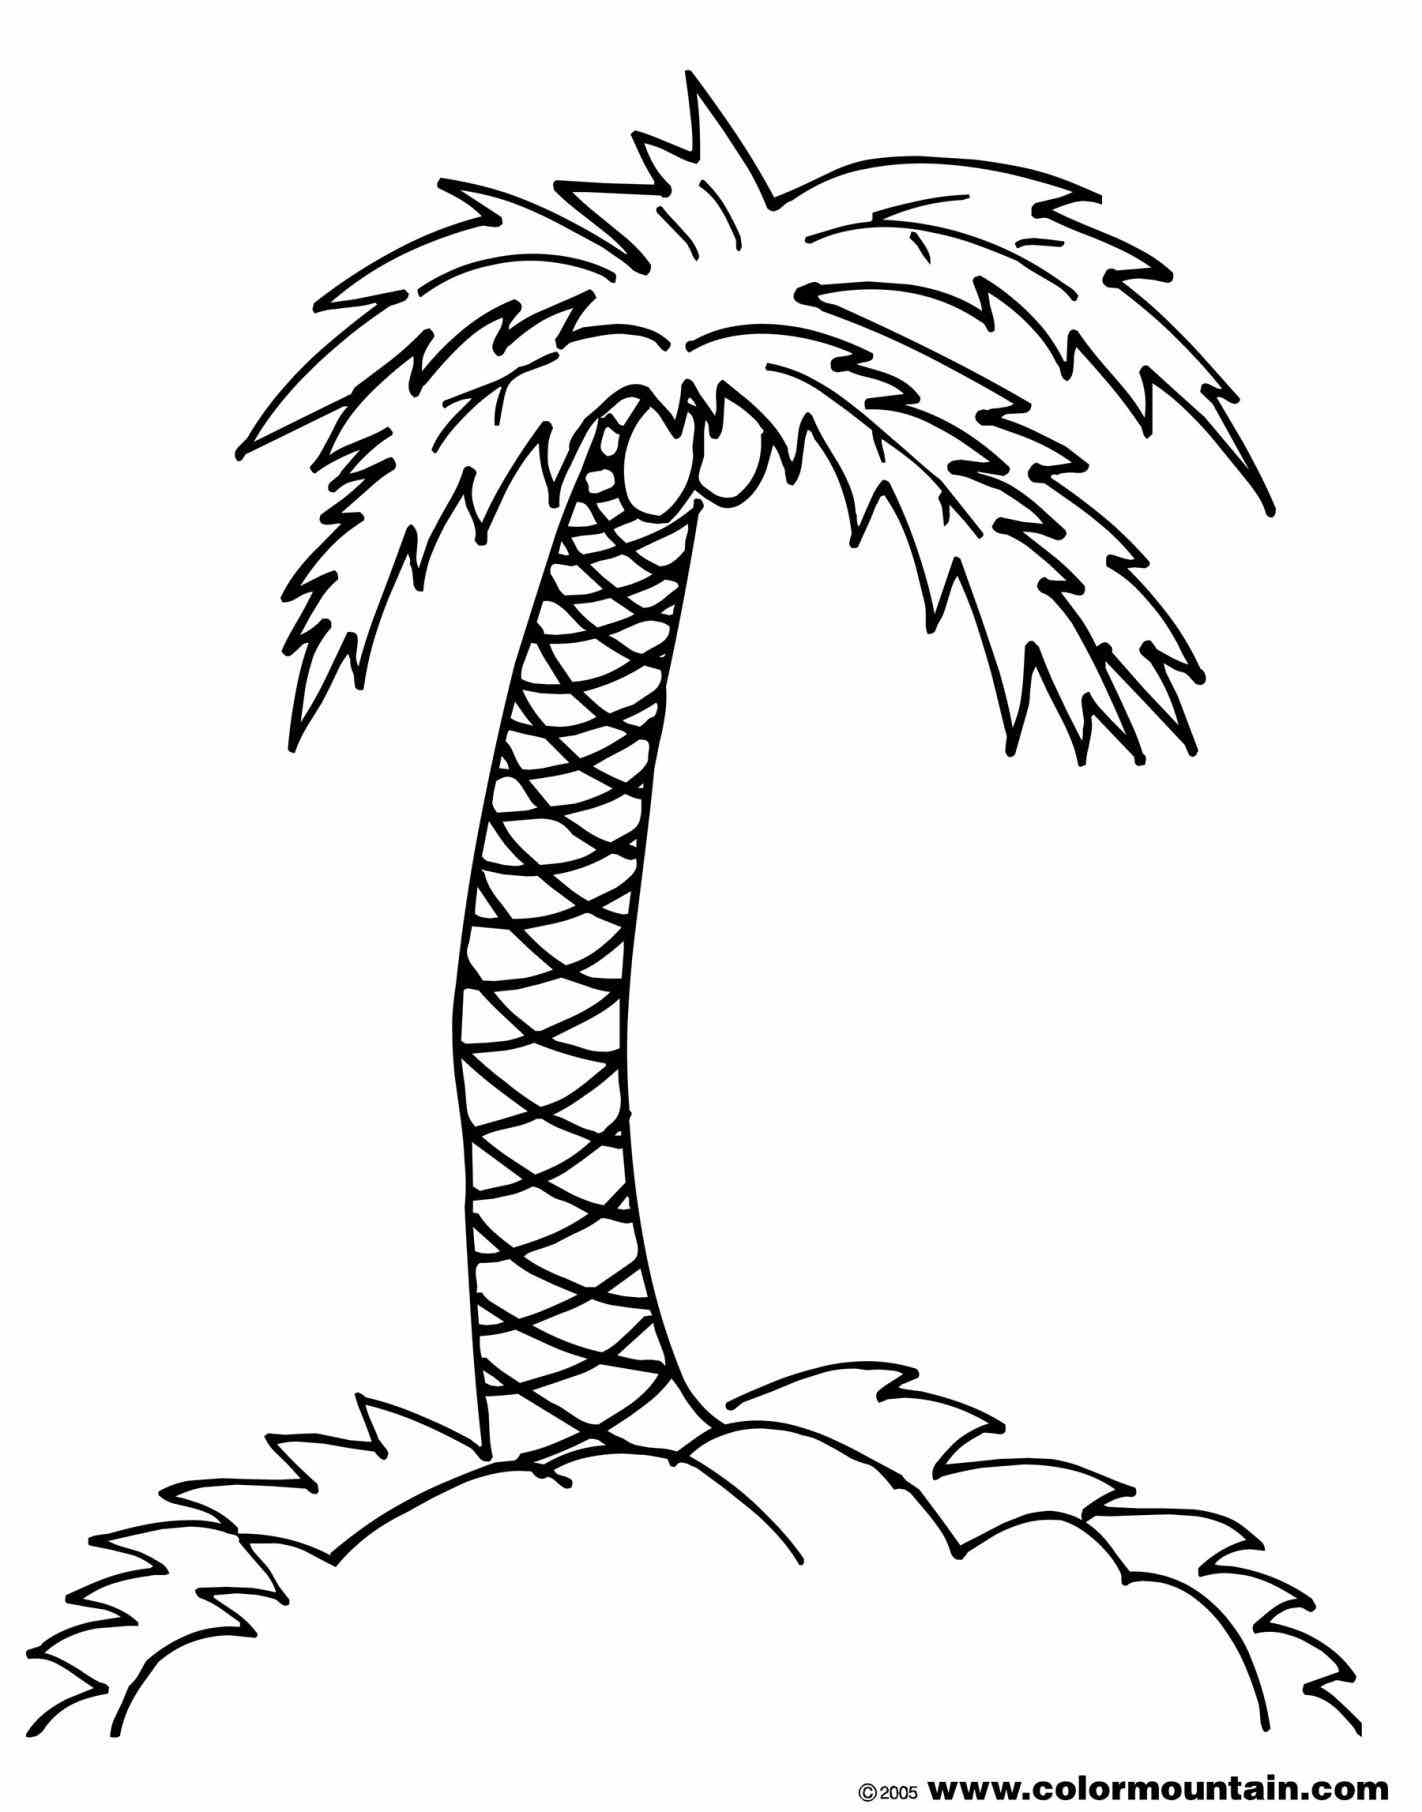 1422x1812 To Finish Your Palm Tree Draw Curved Lines On The Trunk Be Sure